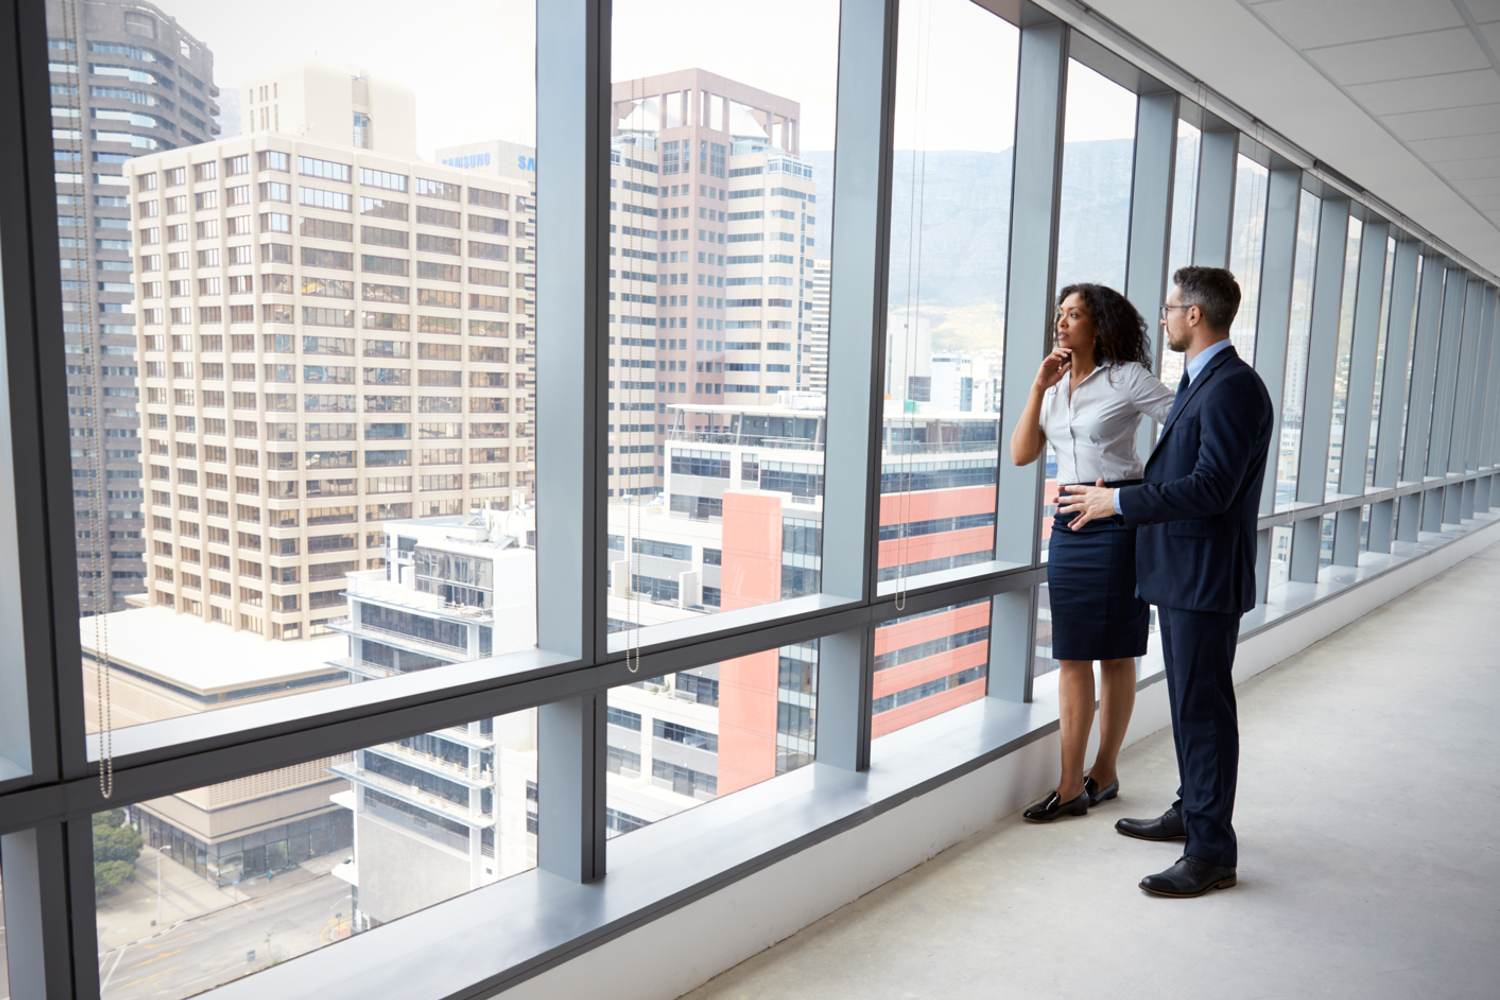 Businesswoman admiring view from commercial property window - commercial property solicitors